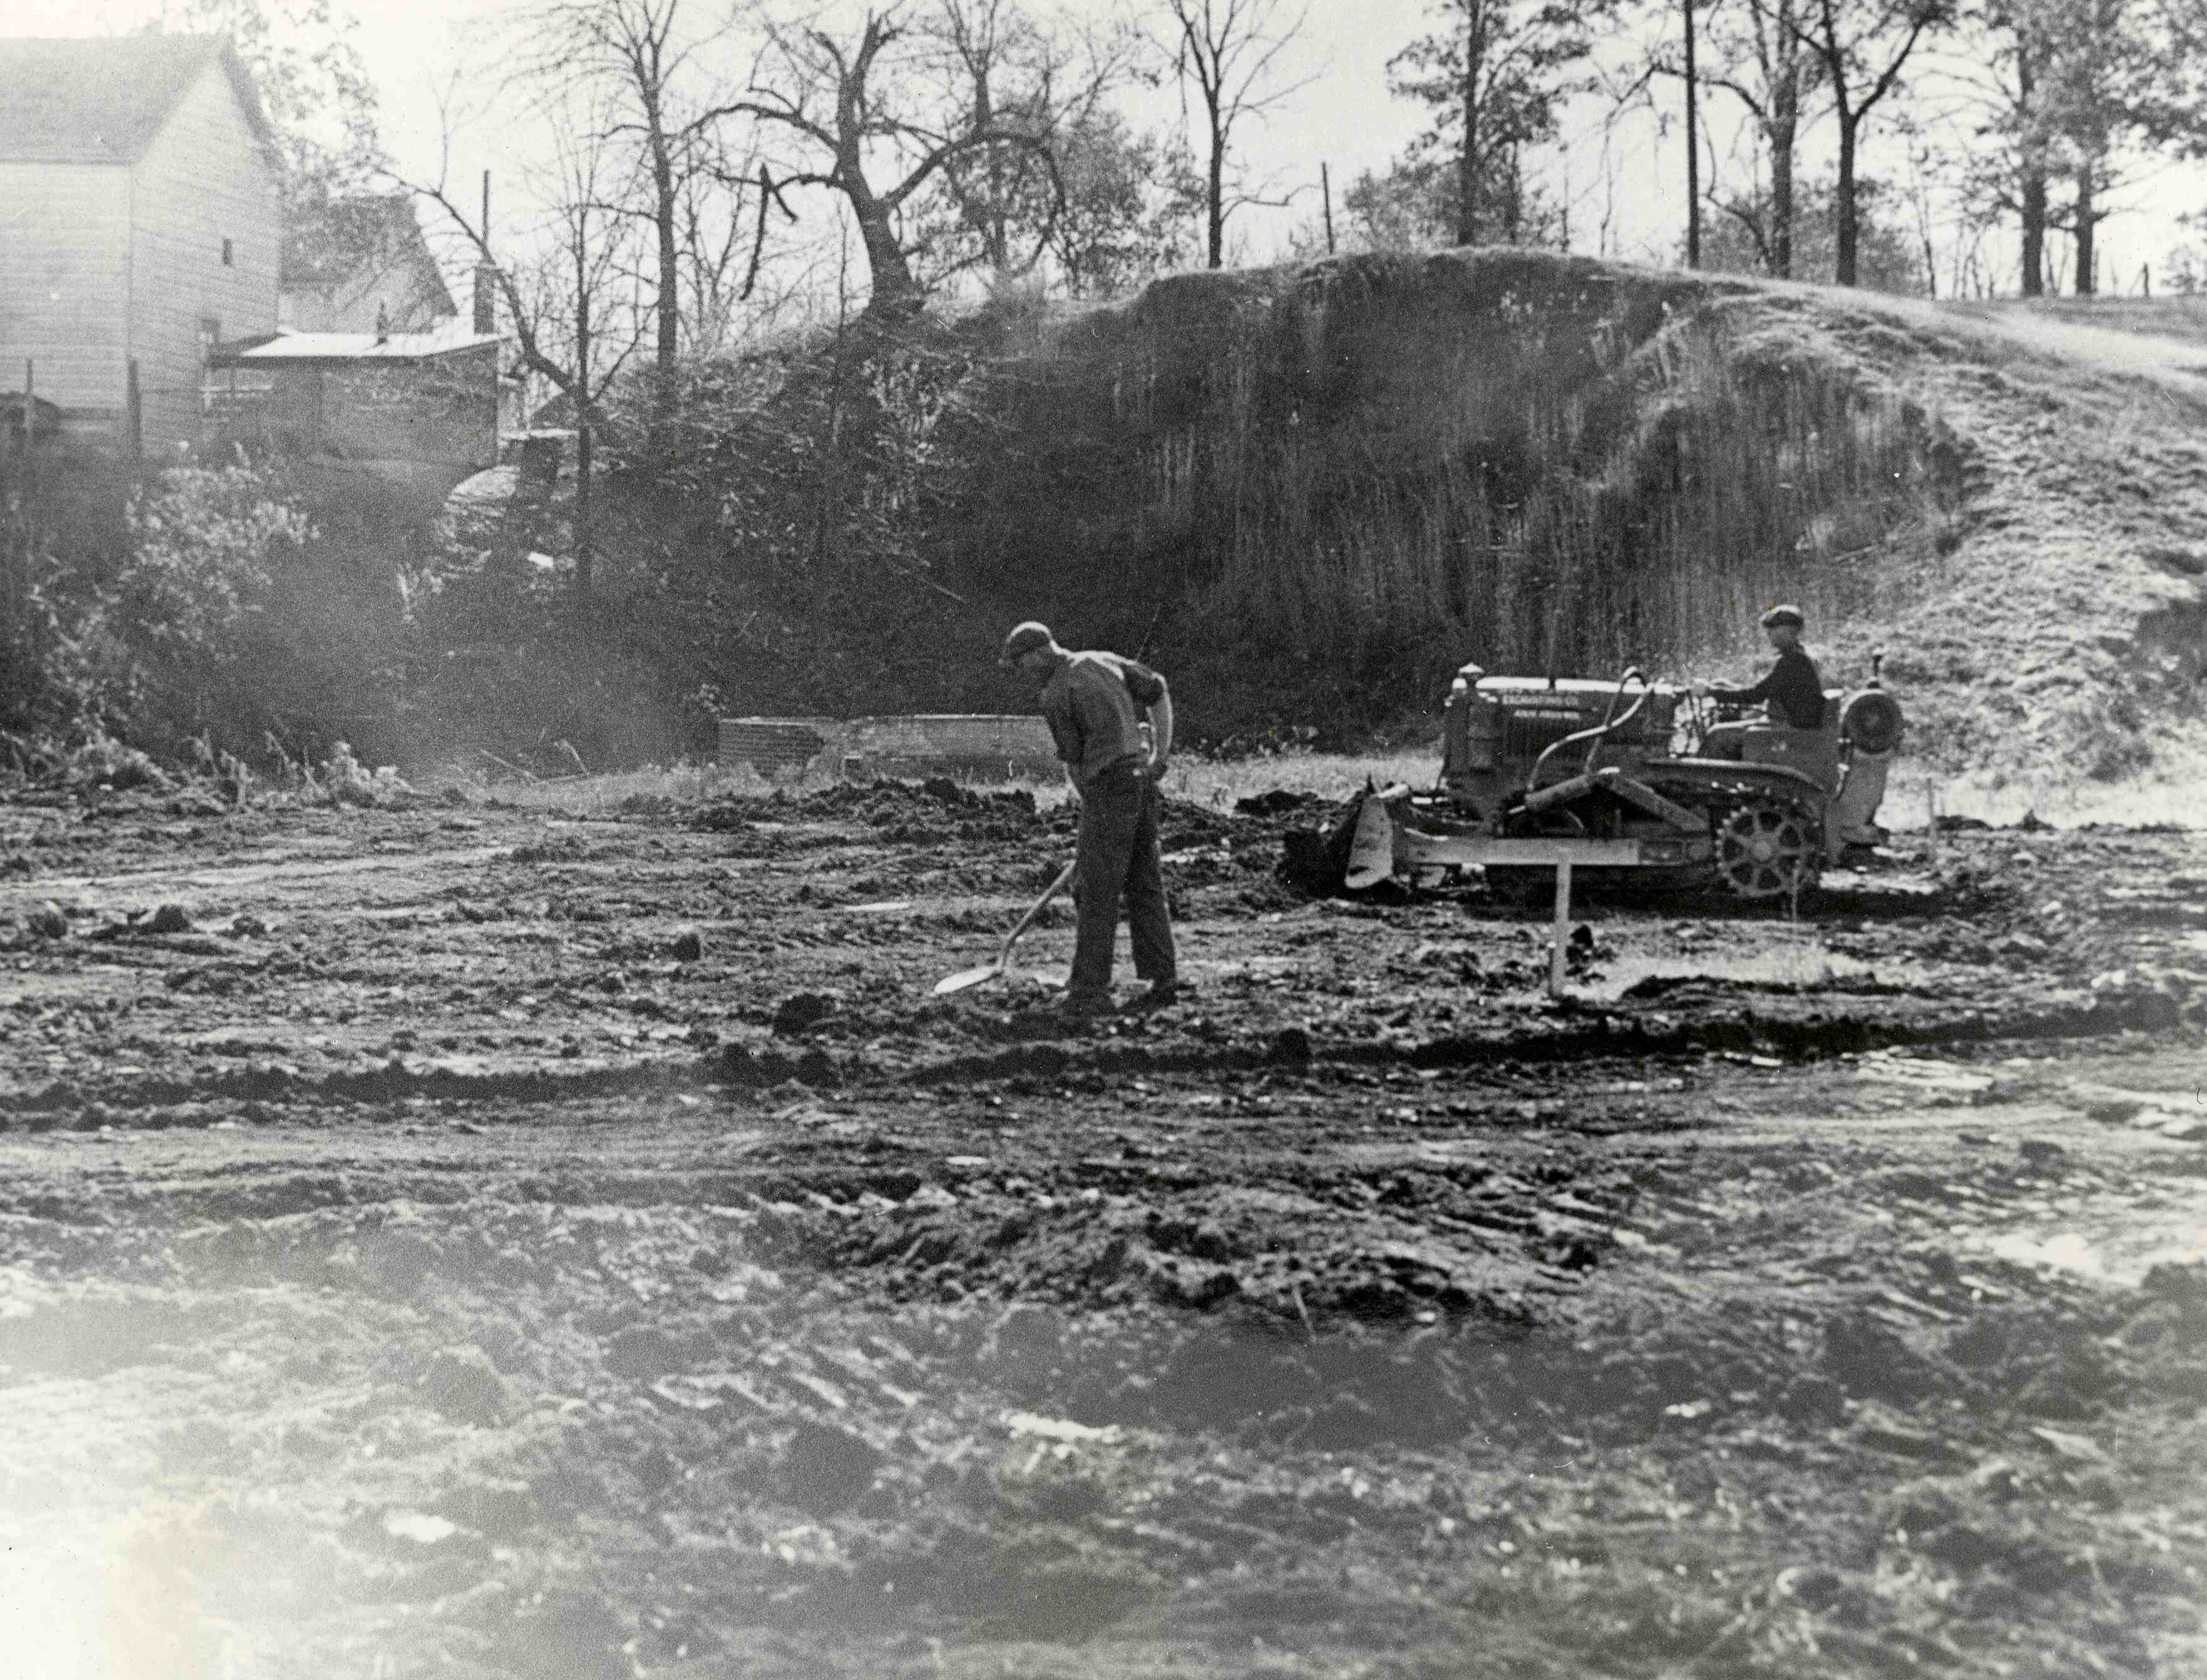 Excavation for Ann Arbor Police Department outdoor pistol range,1939-1940 image